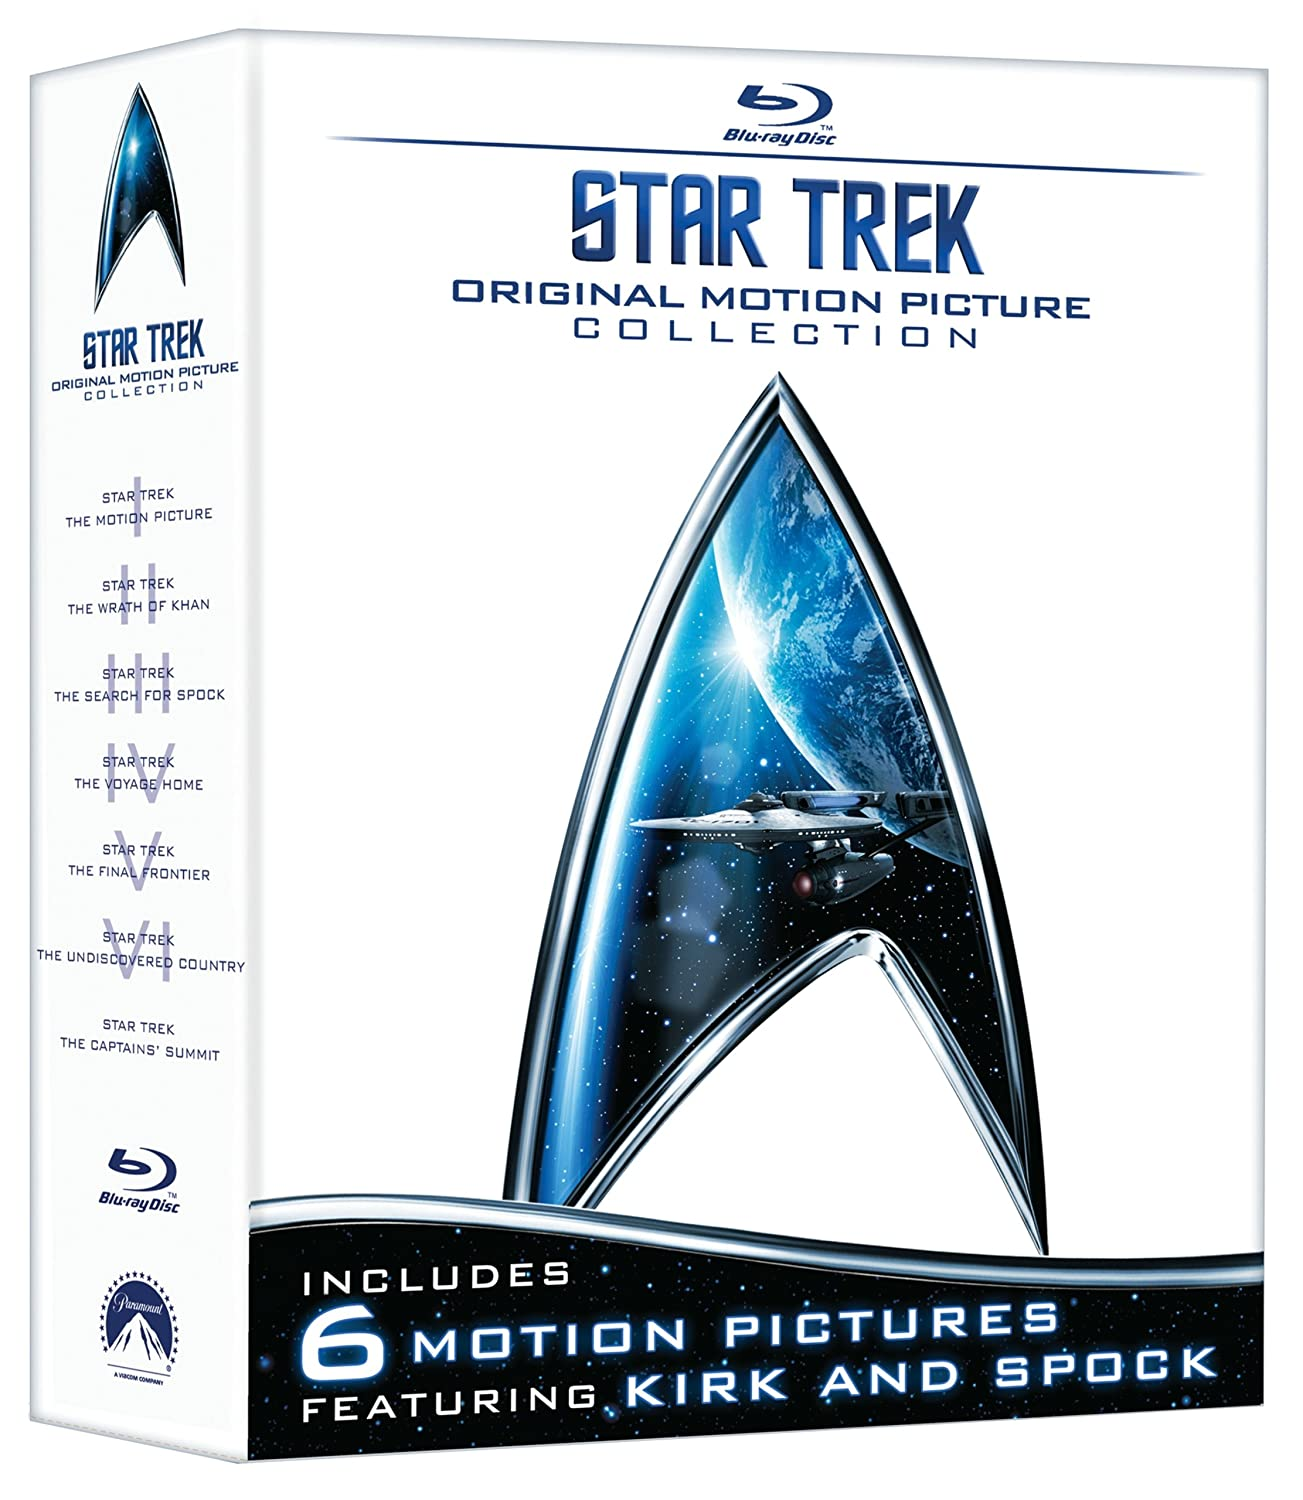 Star Trek: Original Motion Picture Collection (Star Trek I-VI + The Captain's Summit Bonus Disc) [Blu-ray] $34.99